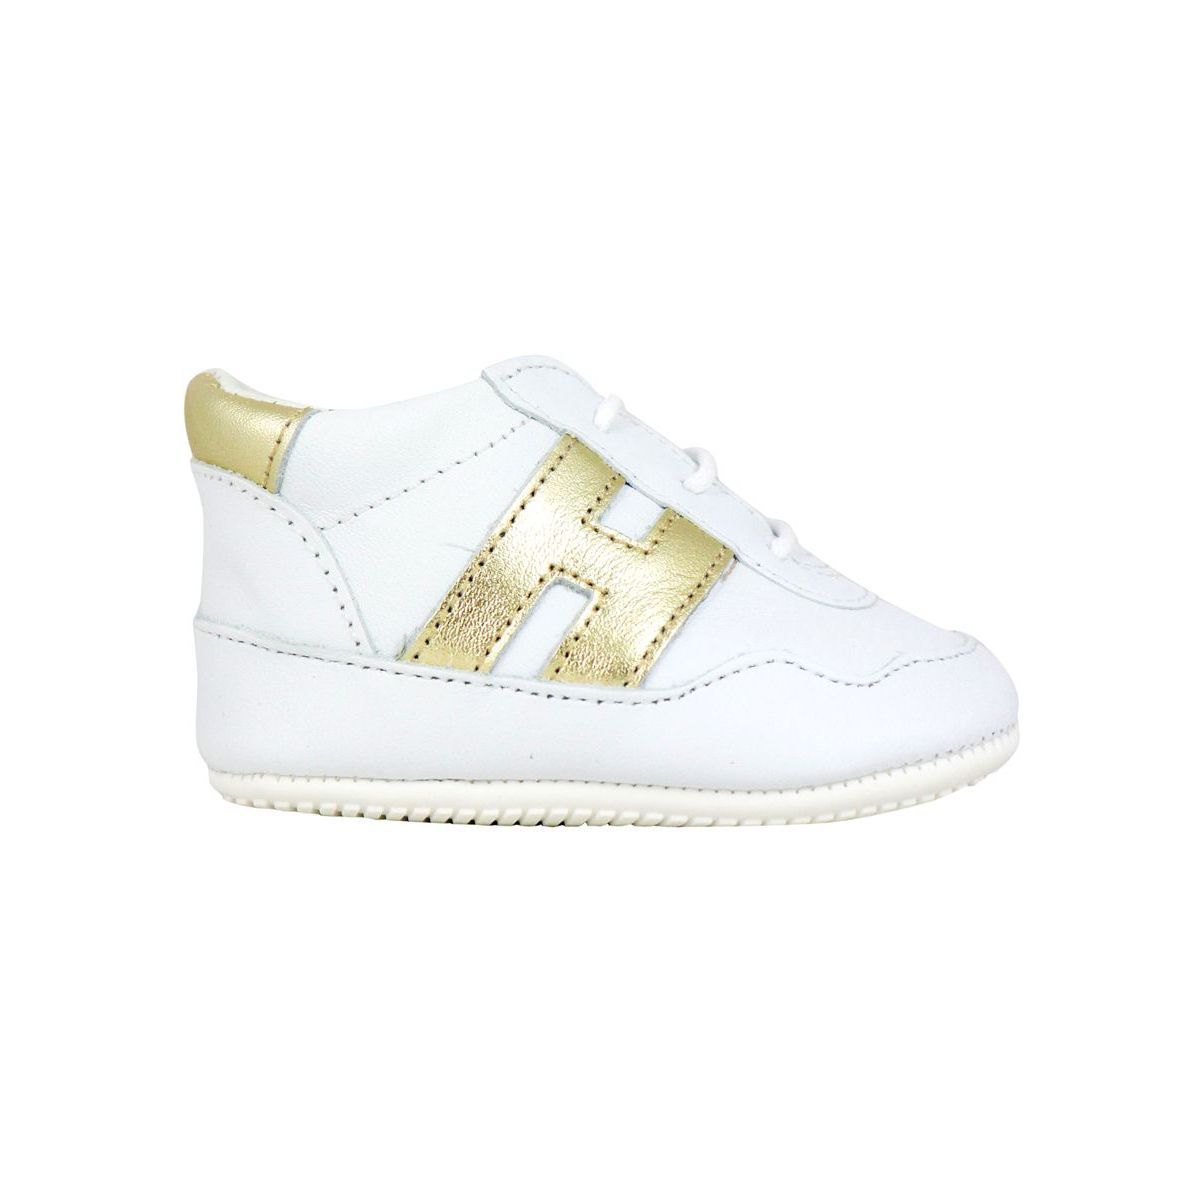 Olympia sneakers in leather with contrasting H B.co/oro Hogan